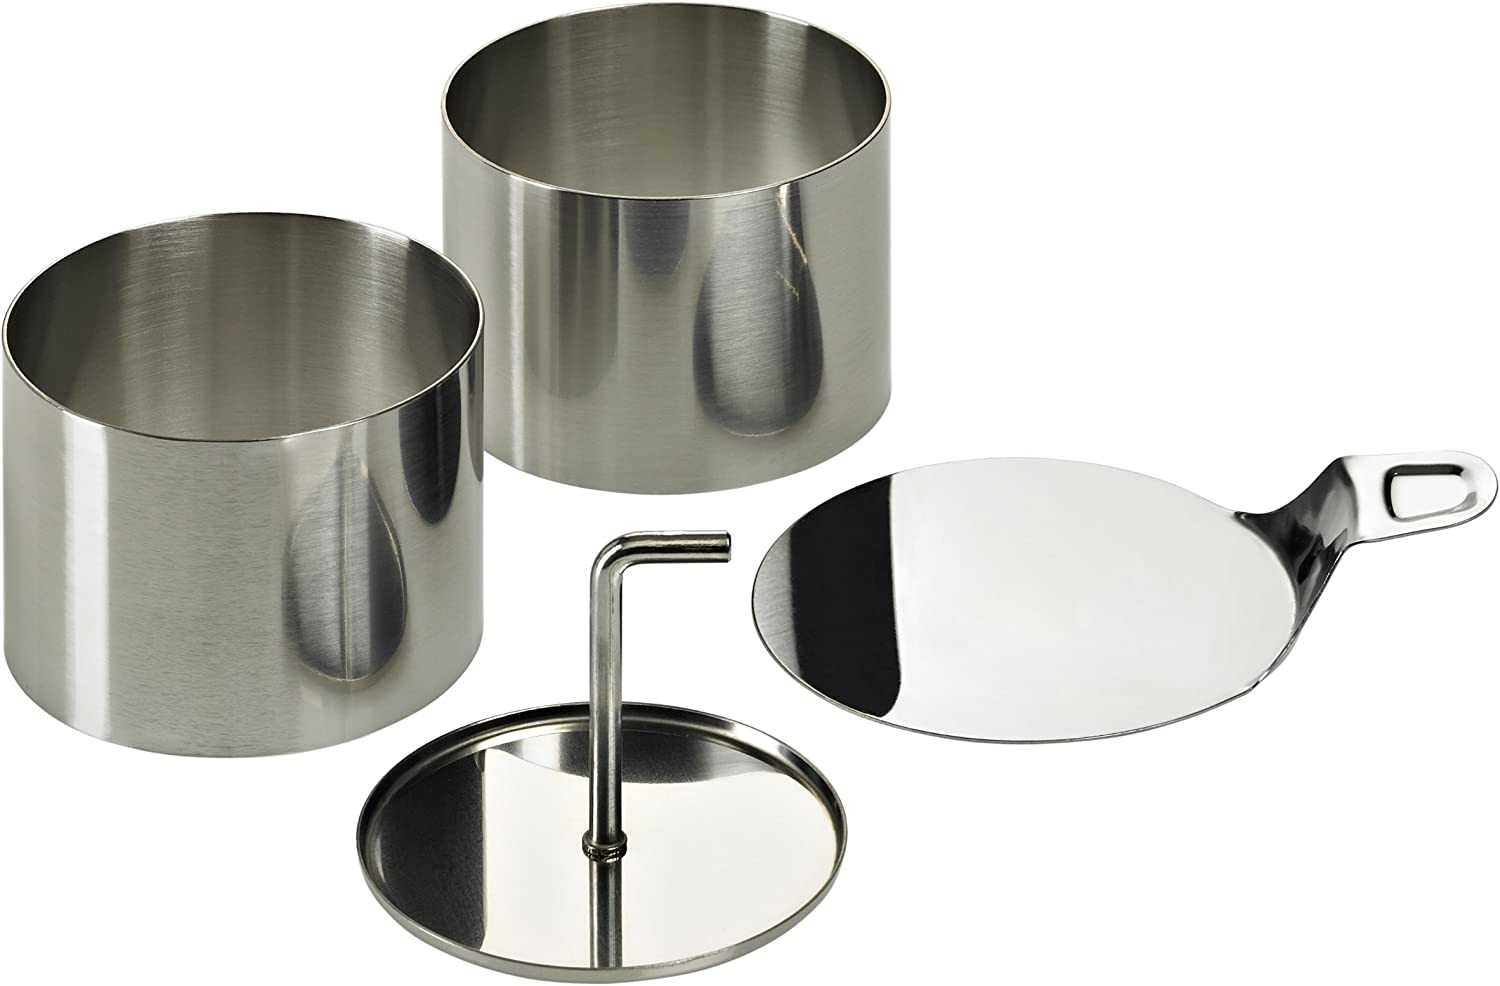 Lurch Germany Stainless Steel Dessert Food Rings - Set of 8